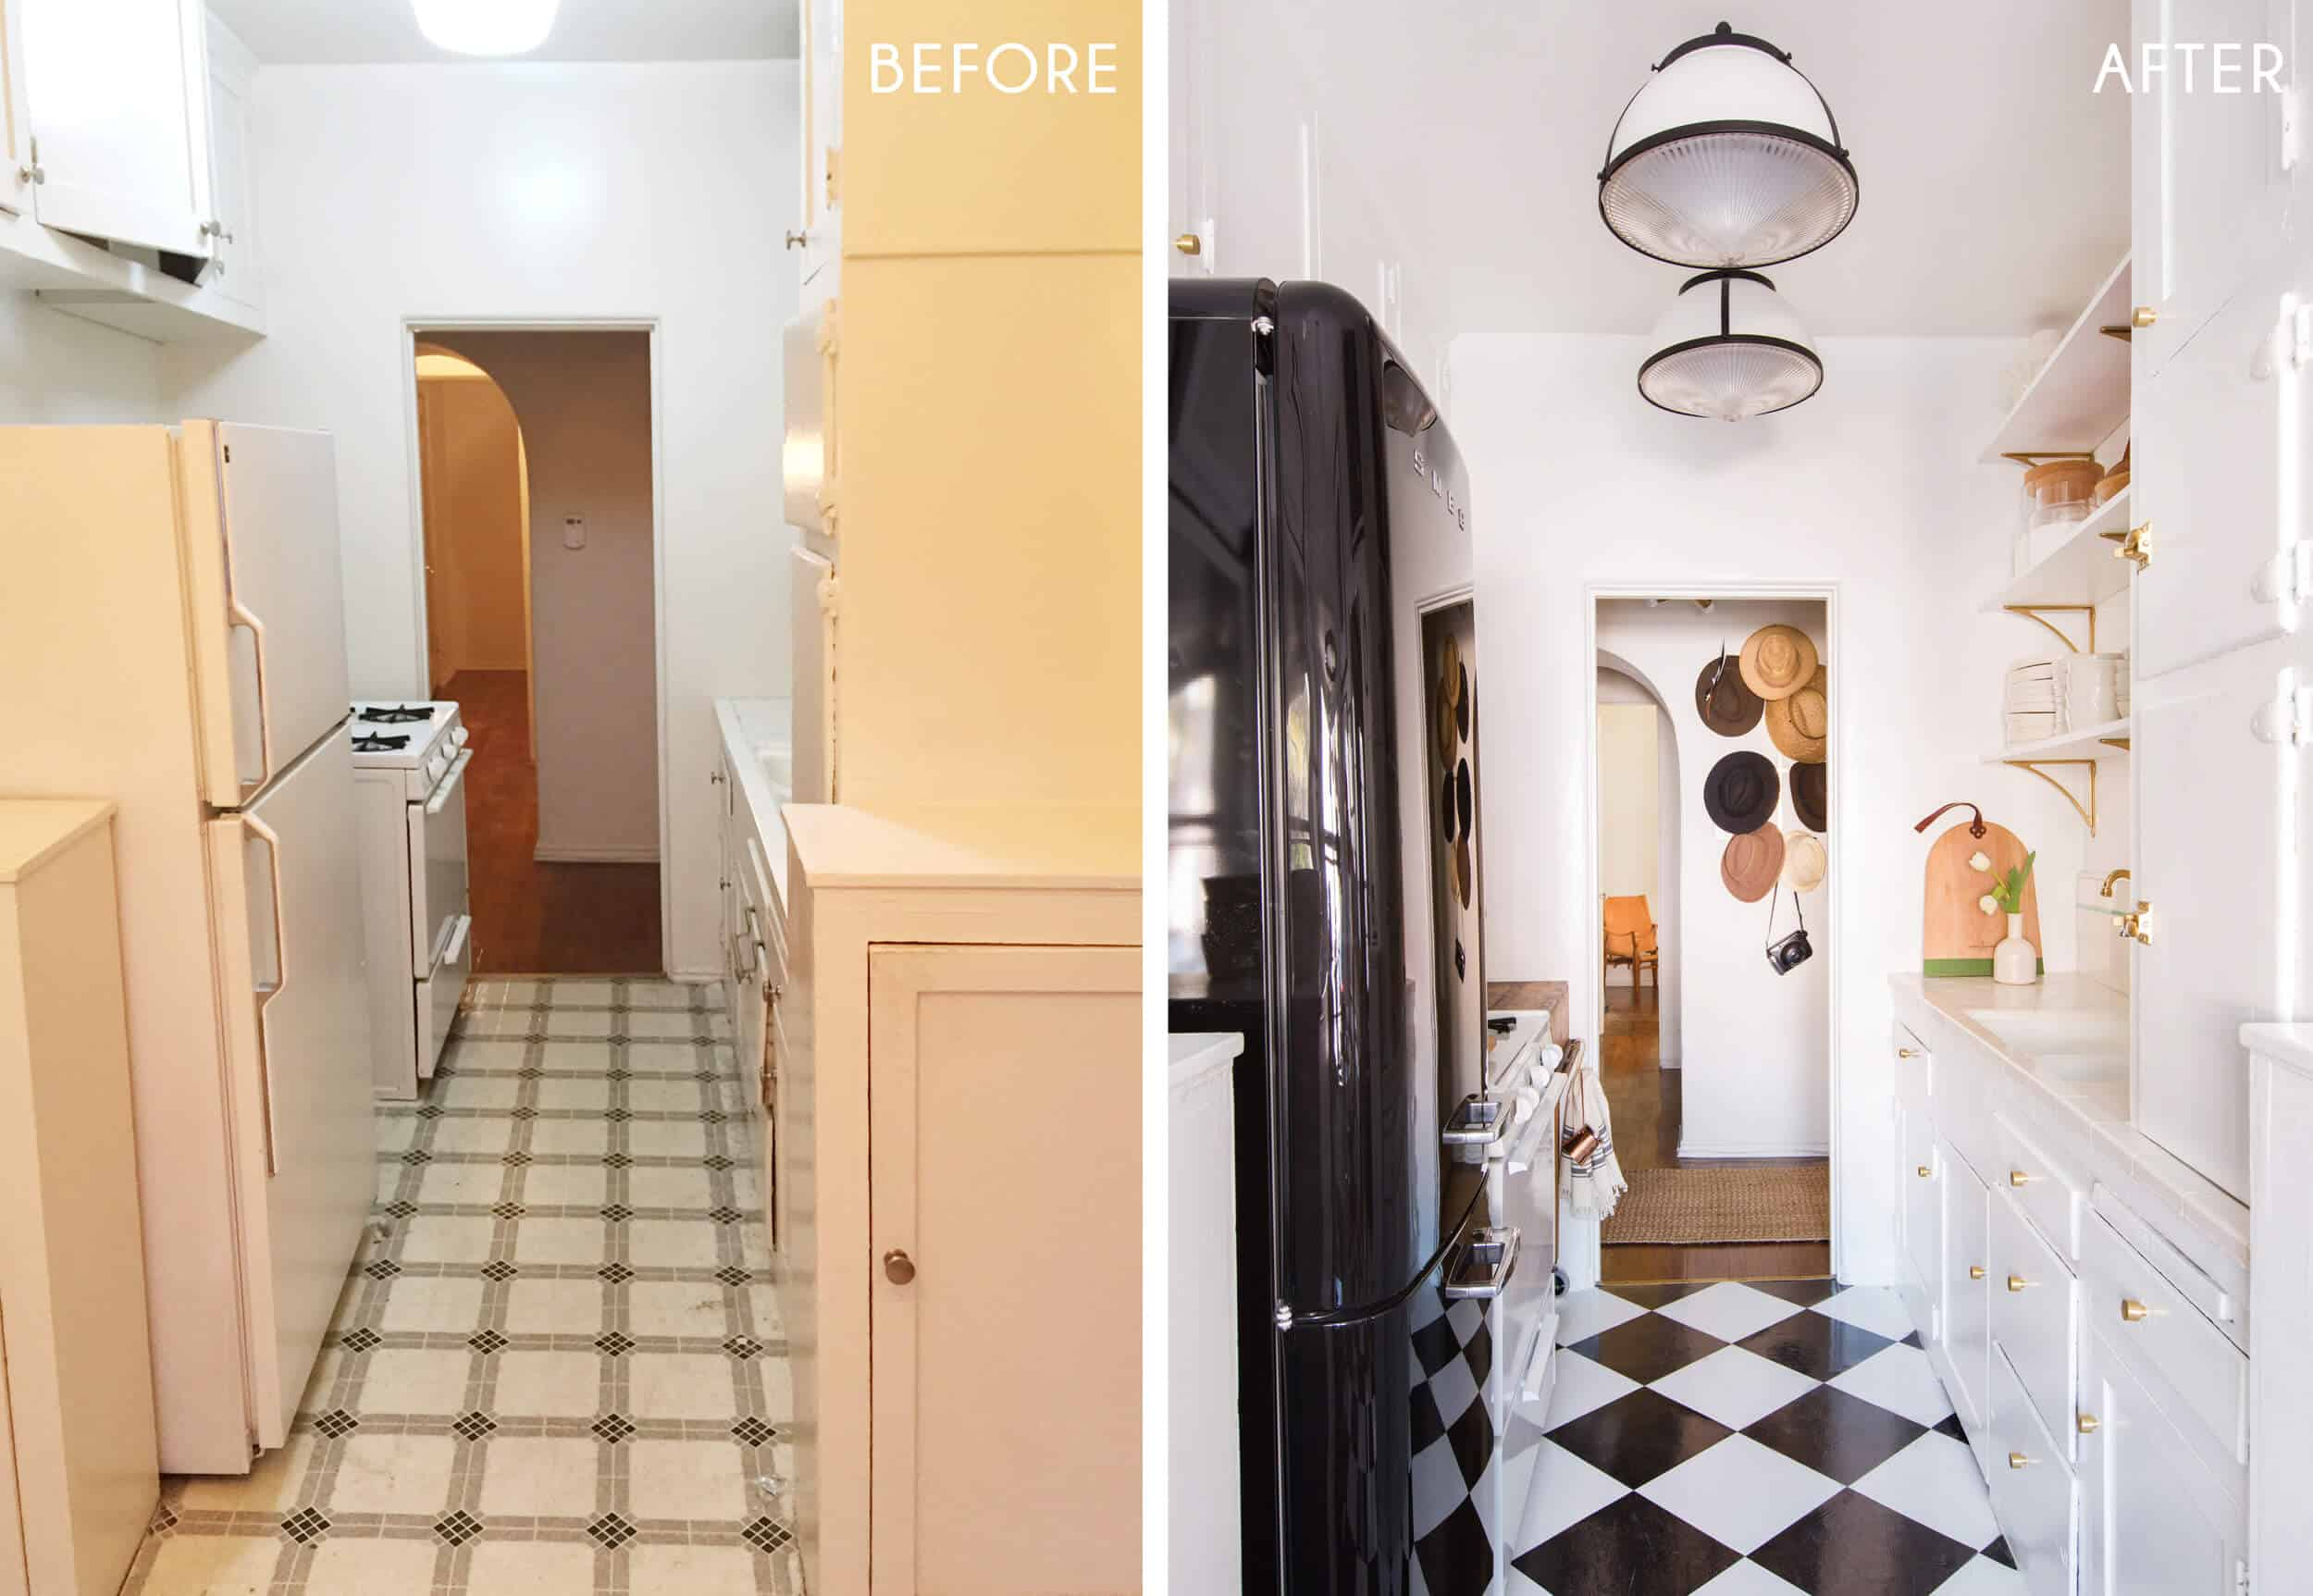 Emily-Henderson_MOTO_-Brady_Masculine_Glam_Kitchen_Dining-Room_Reveal_Before-and-After_5